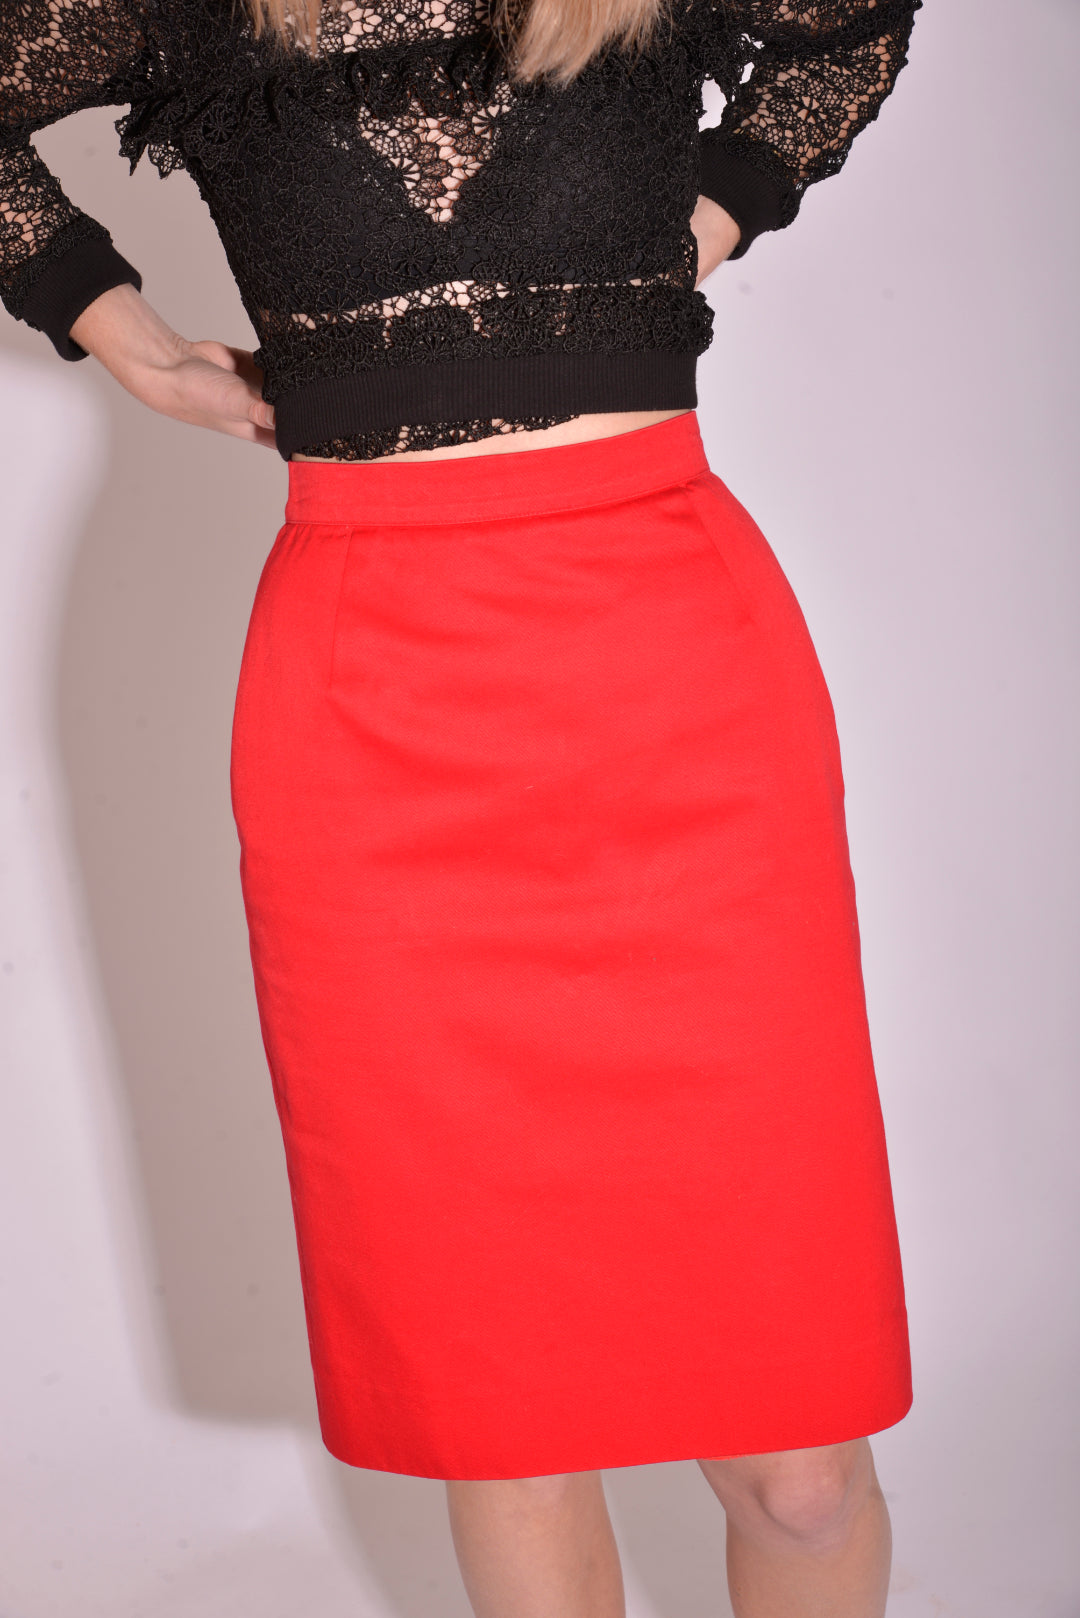 Vintage YSL Pencil Skirt (S/M) - Mercado32